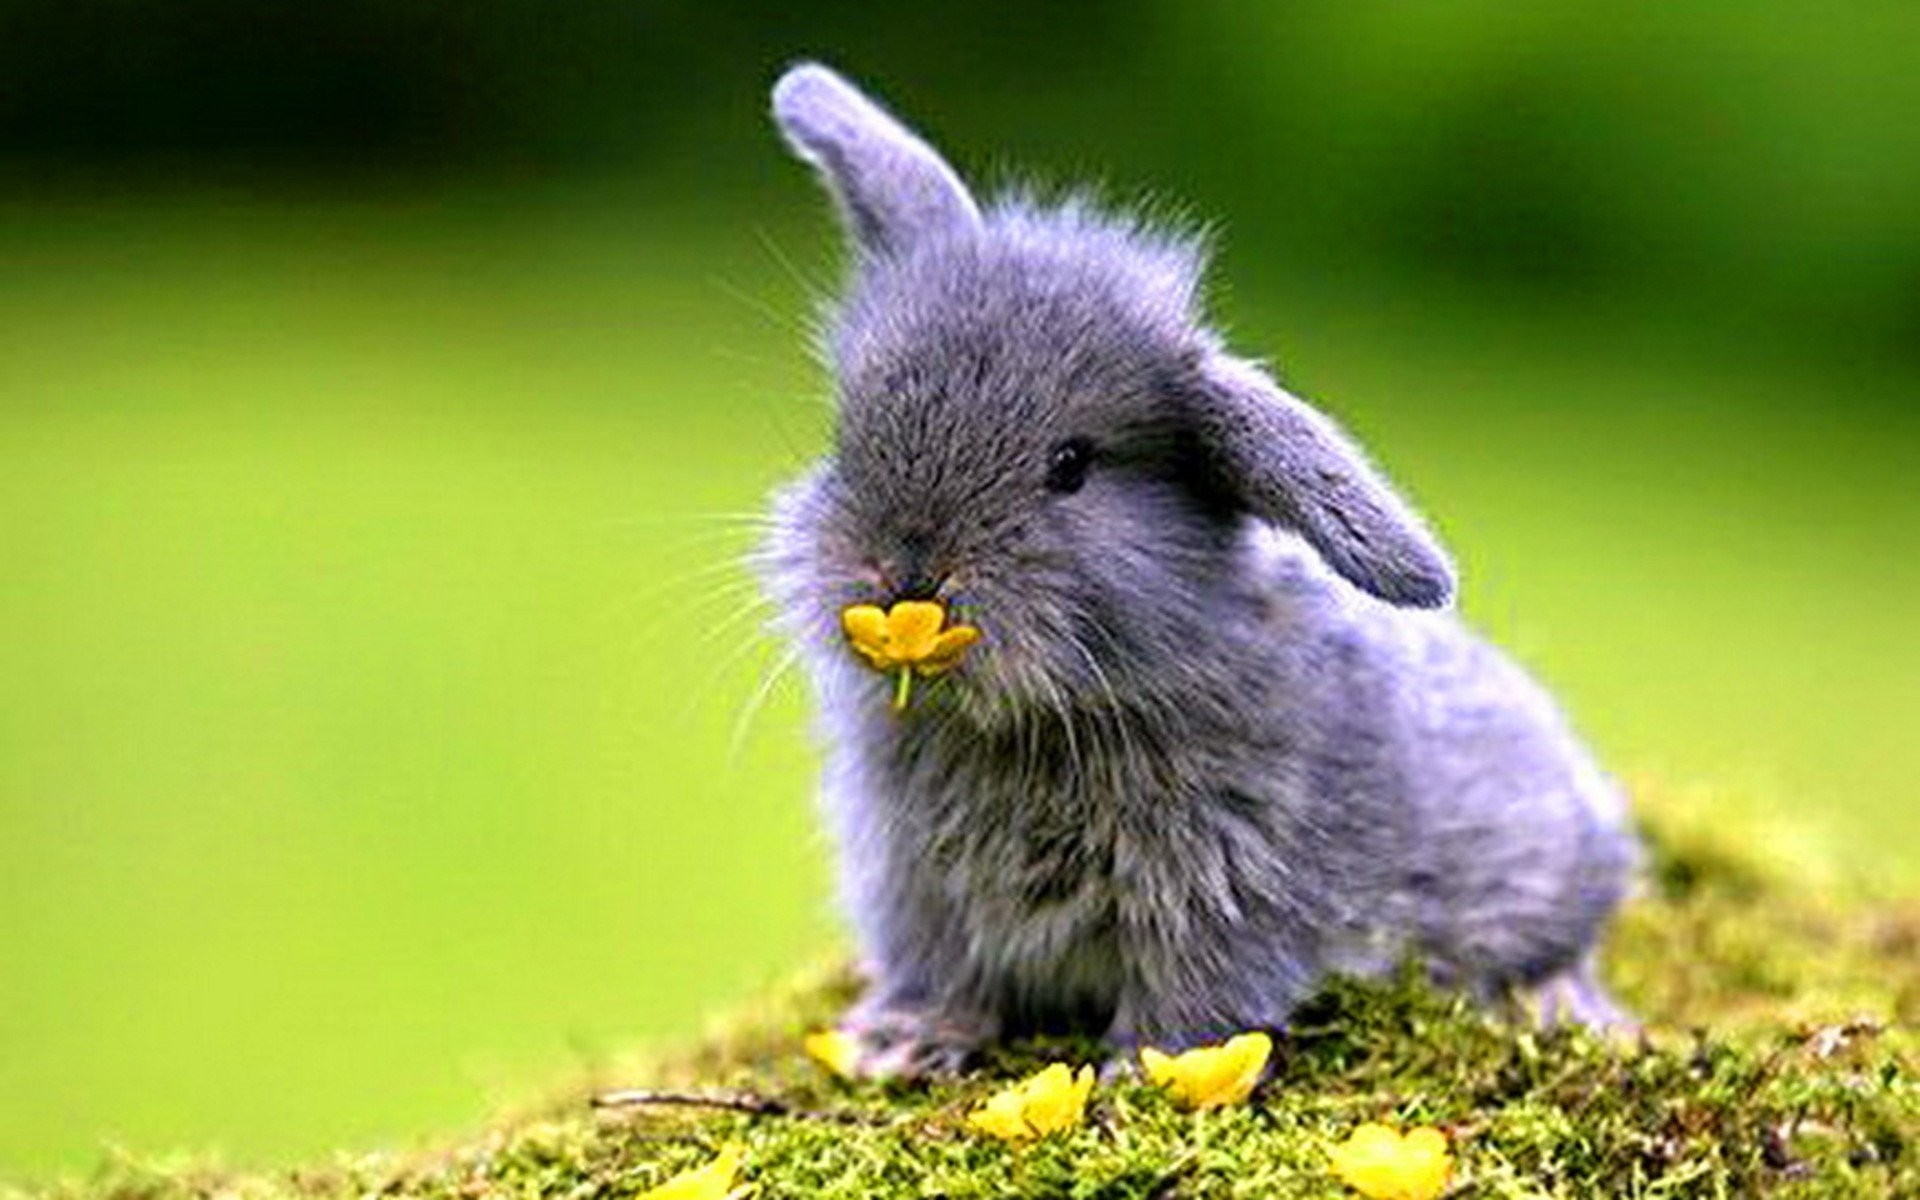 Cute Bunny Wallpapers 1